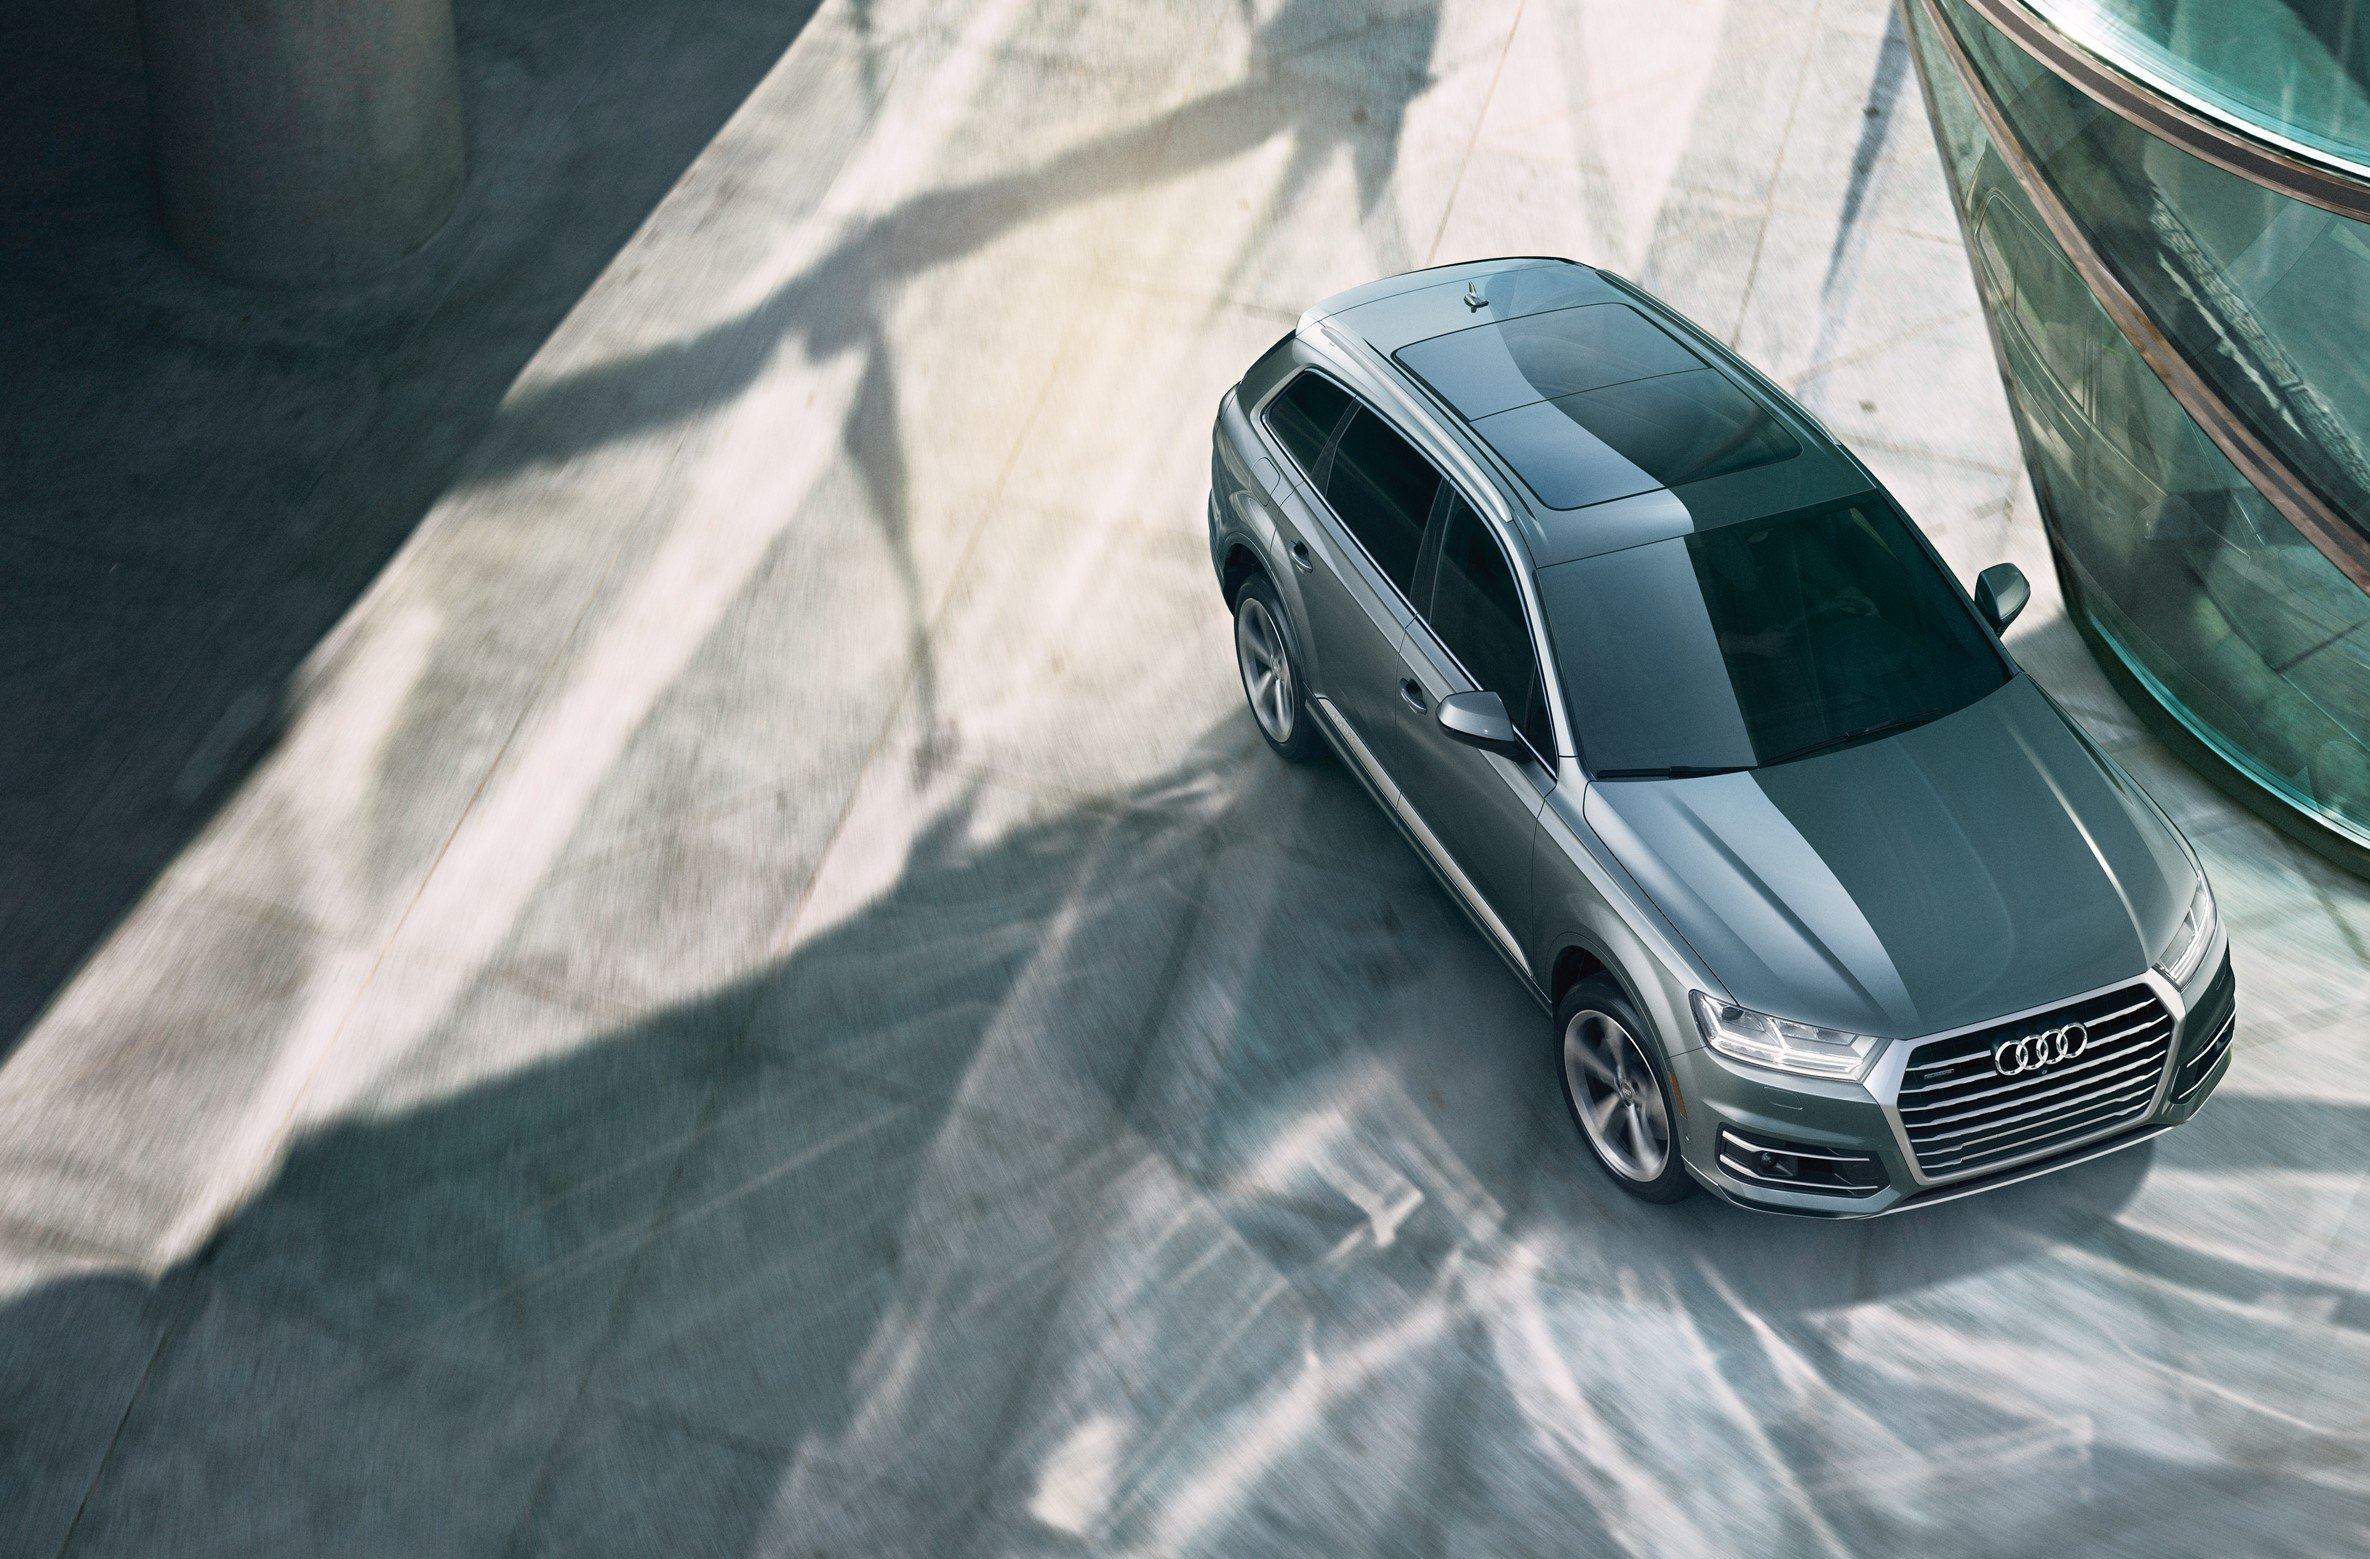 The Q7: Rugged yet refined